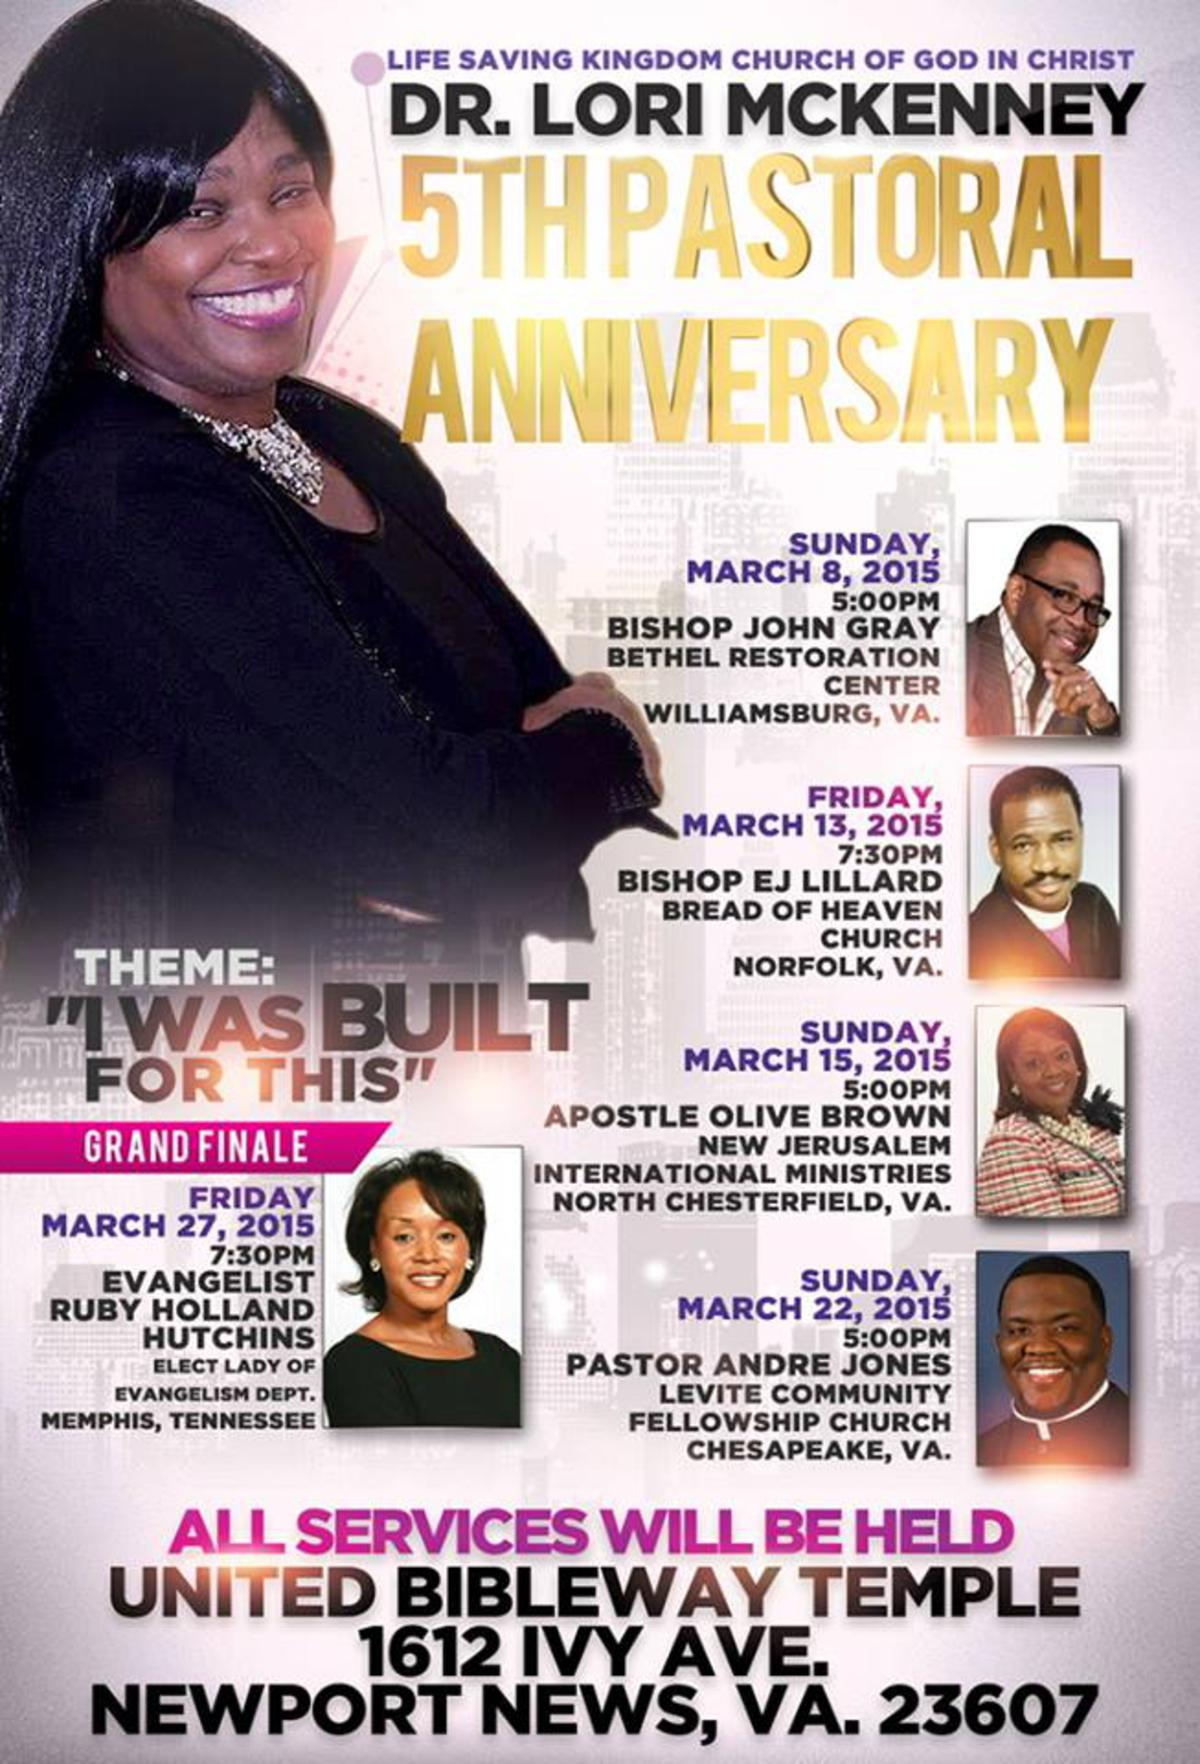 Chief Apostle Olive Brown is speaking in Tidewater!